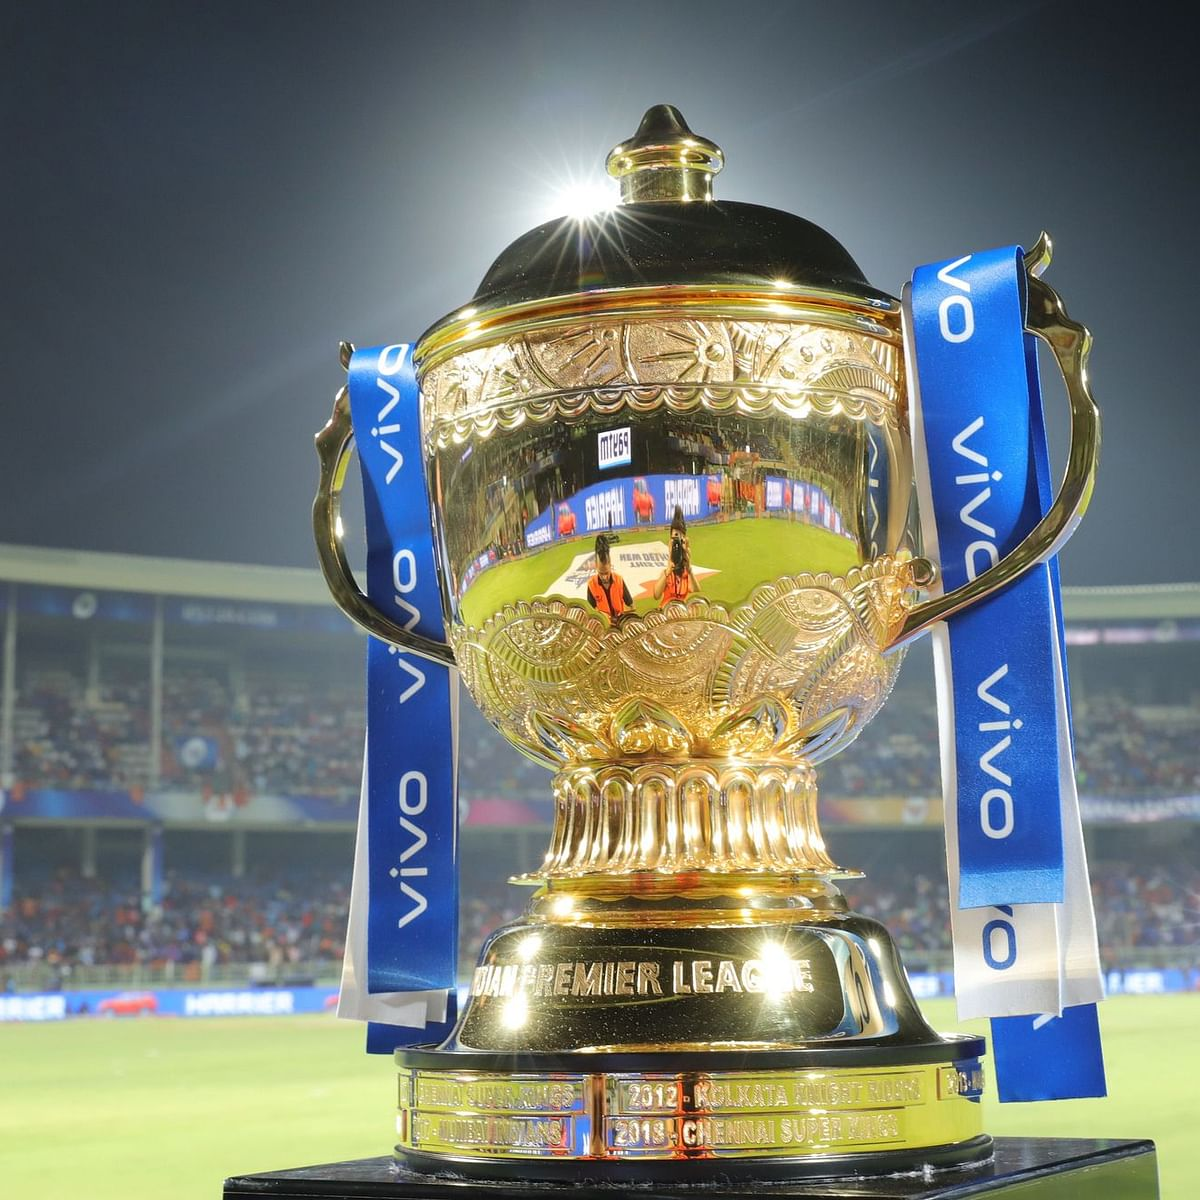 IPL 2020 likely to be held overseas in UAE or Sri Lanka, says BCCI official